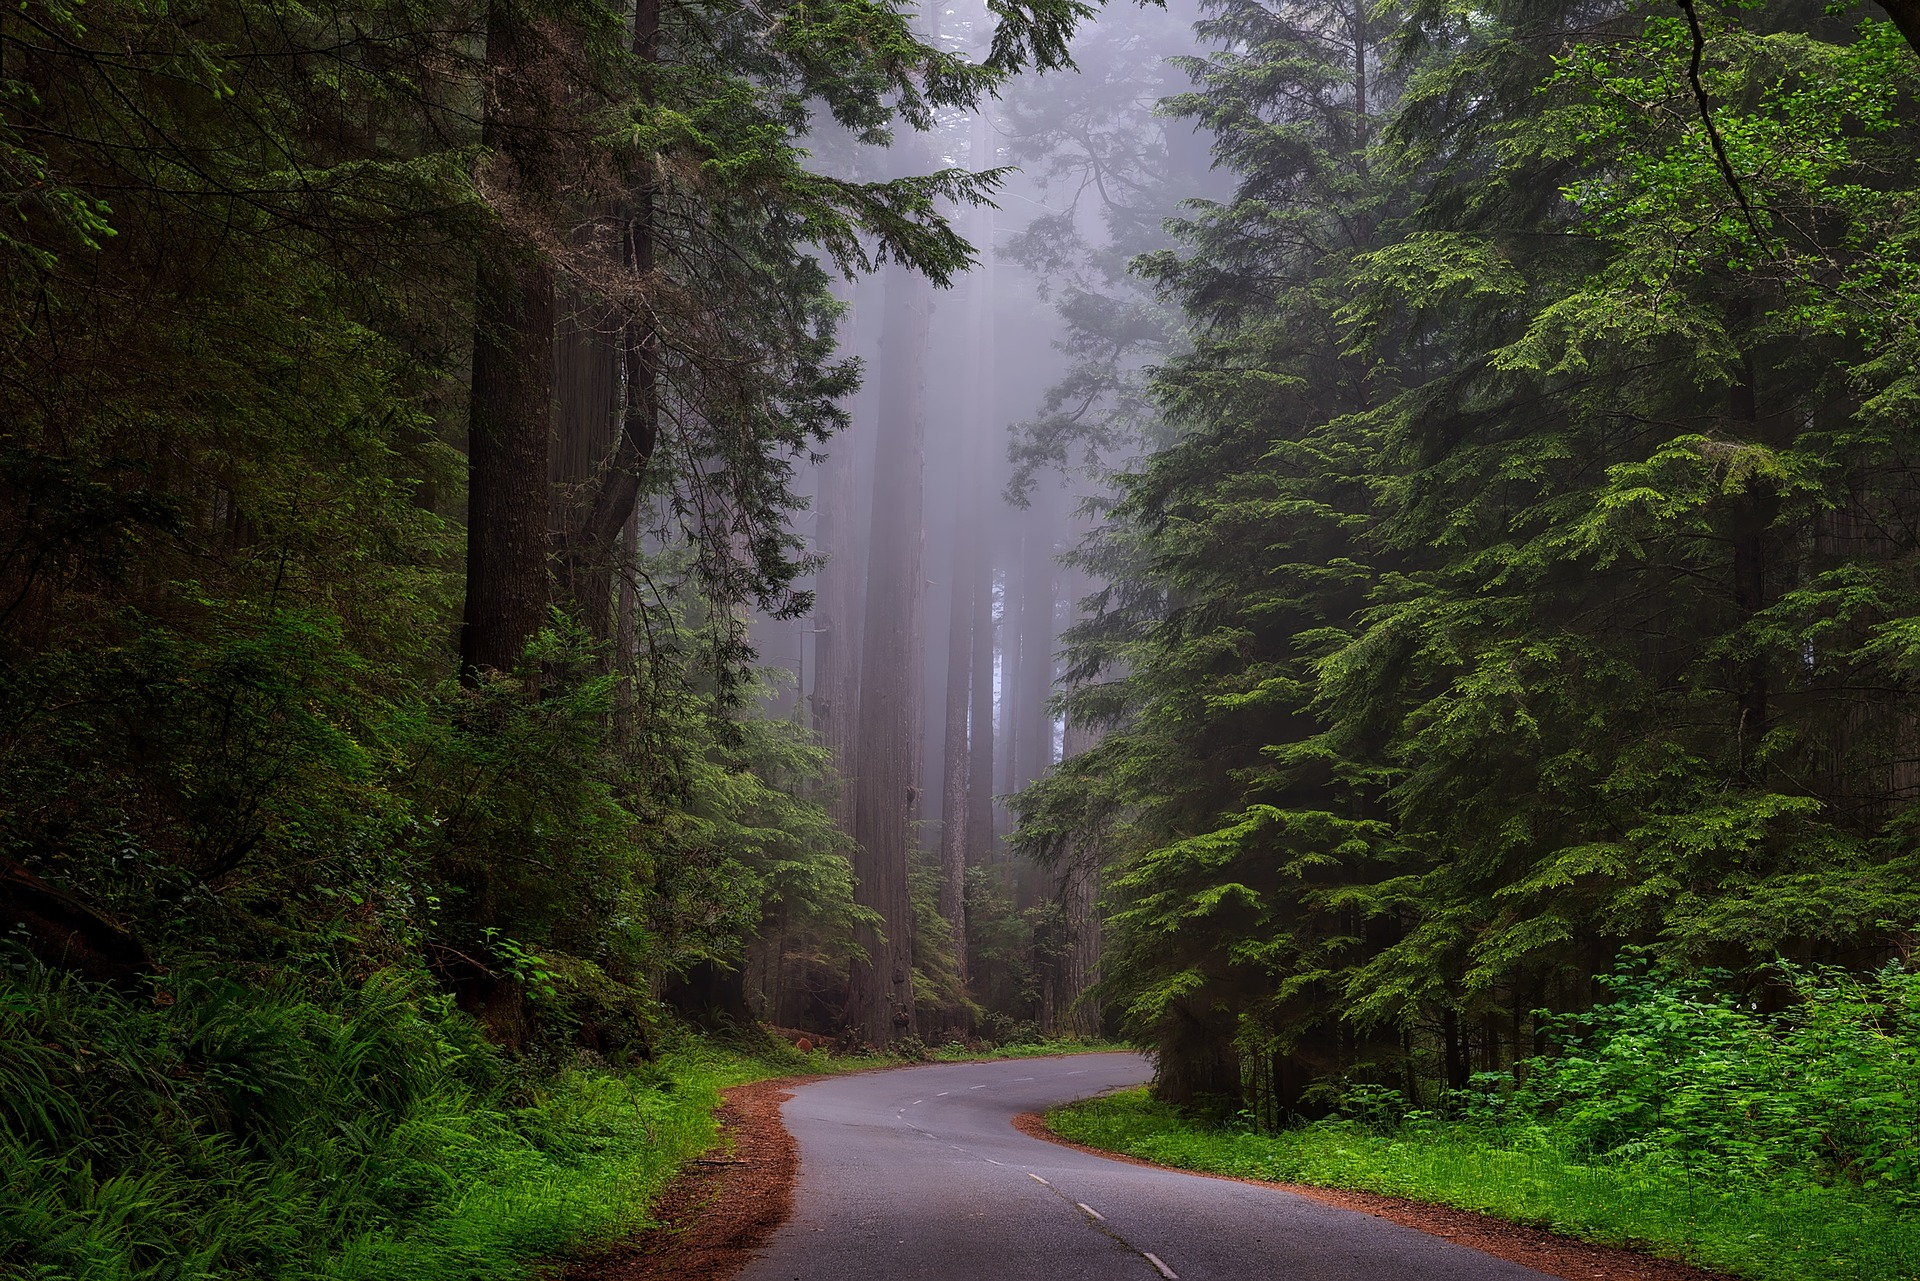 redwood-national-park-1587301_1920